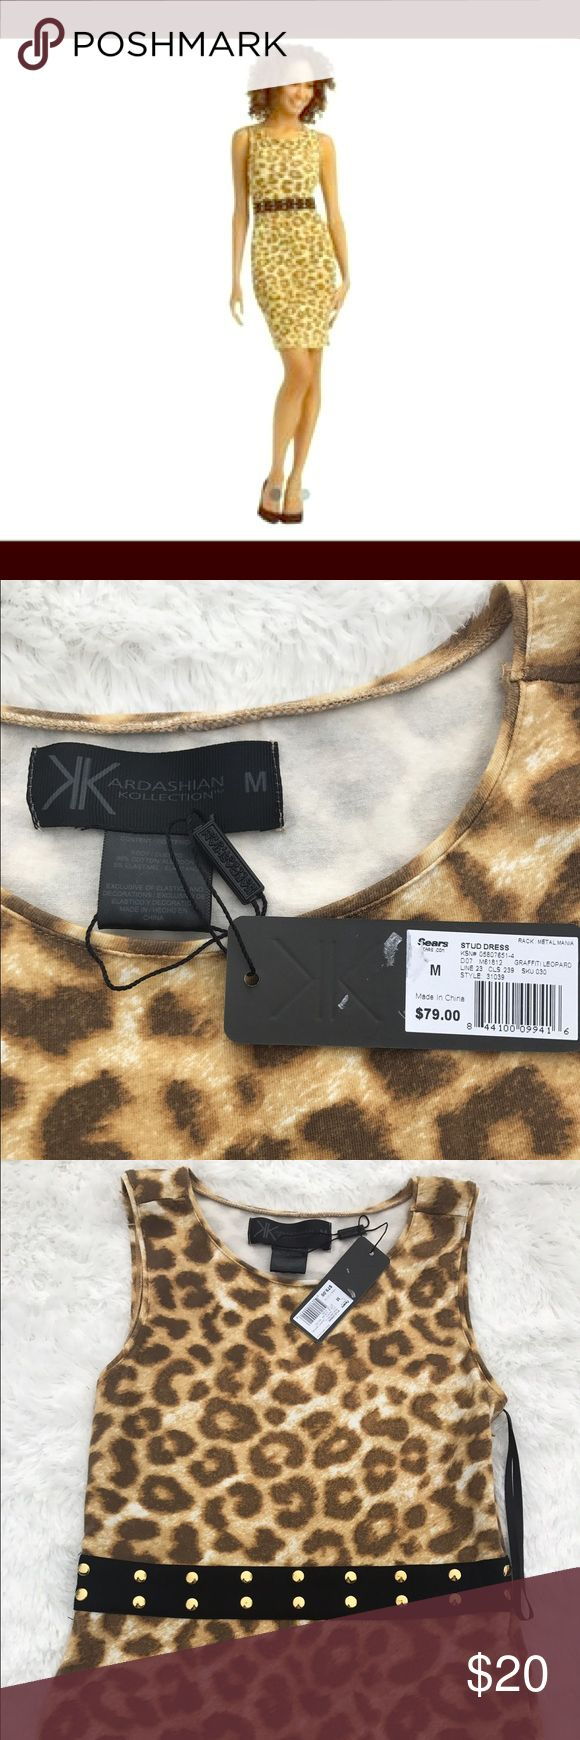 Kardashian Kollection Dress This leopard print bodycon dress has a black band with gold studs wrapped around. It's can be worn alone or with a cute blazer. Kardashian Kollection Dresses Mini